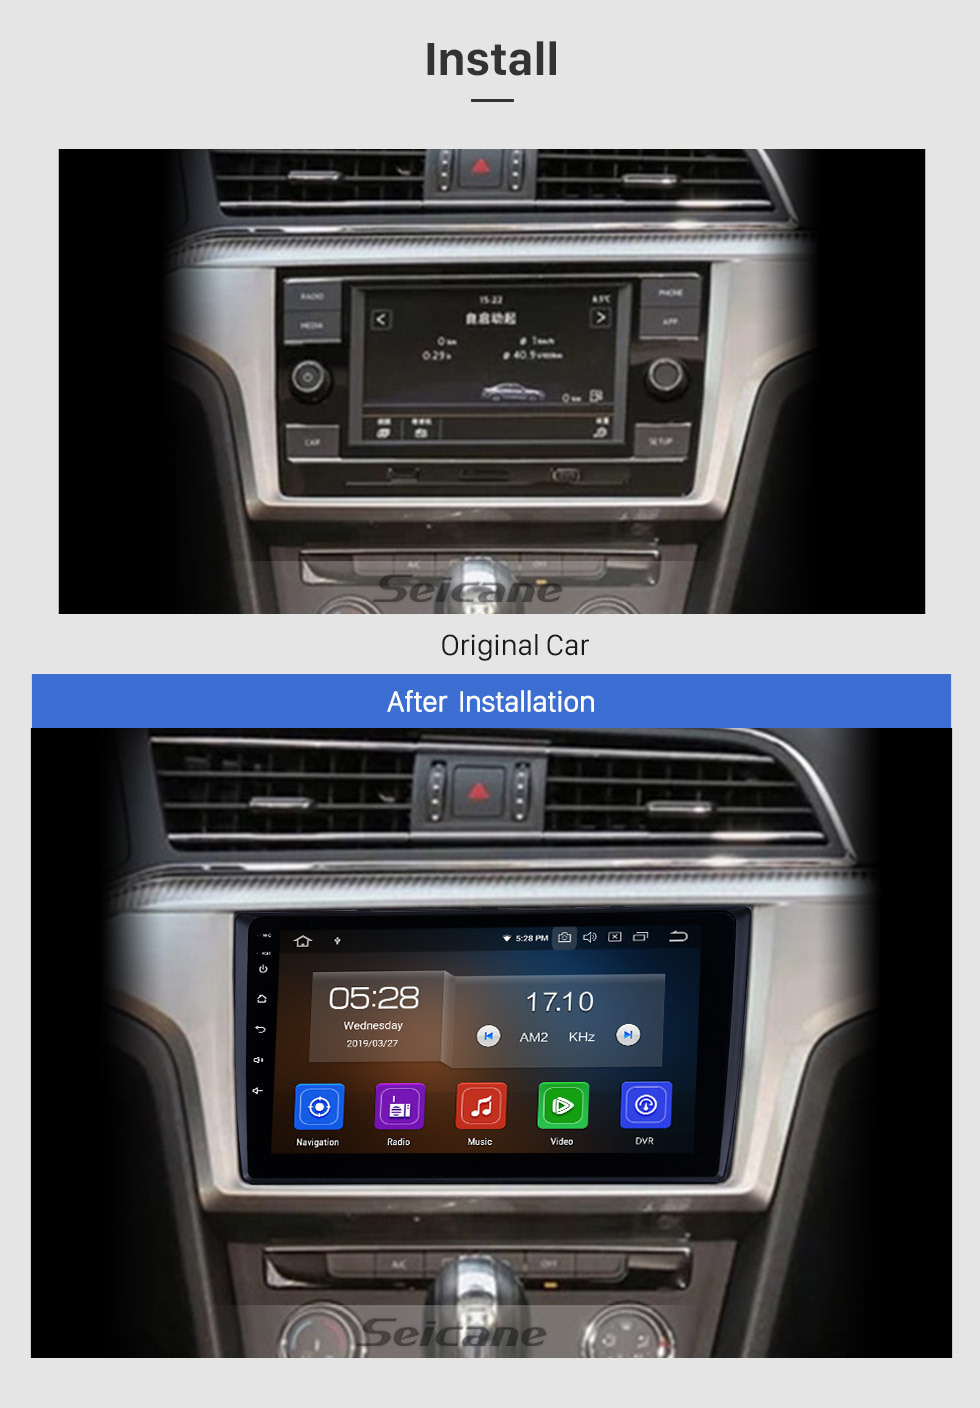 Seicane OEM 9 inch HD Touchscreen GPS navigation system Android 9.0 for 2018 VW Volkswagen Universal Support 3G/4G WiFi Radio Bluetooth Vedio Carplay Steering Remote Control